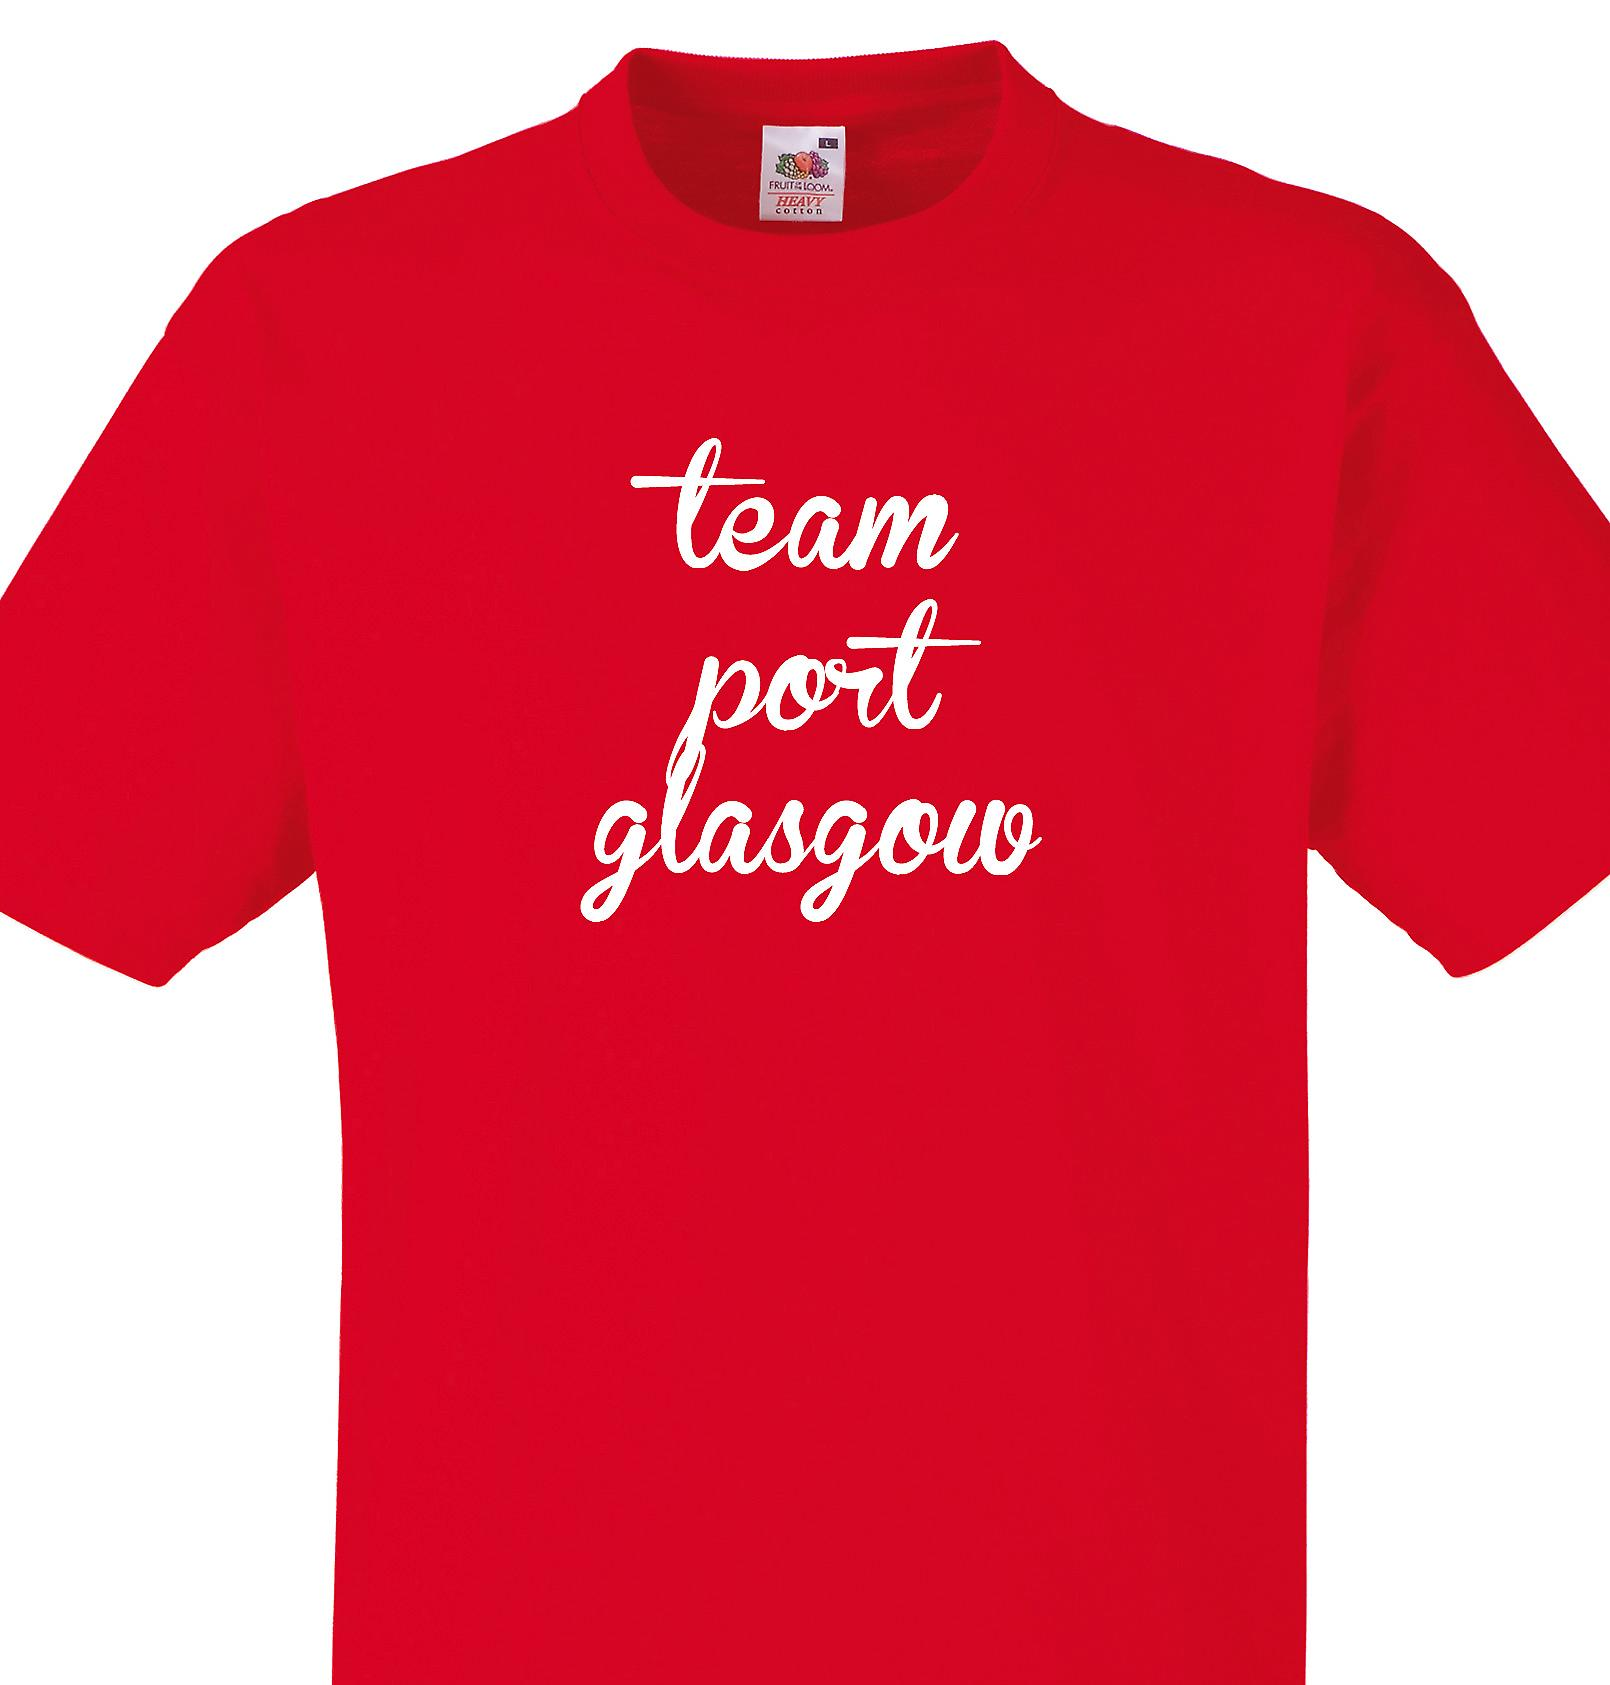 Team Port glasgow Red T shirt